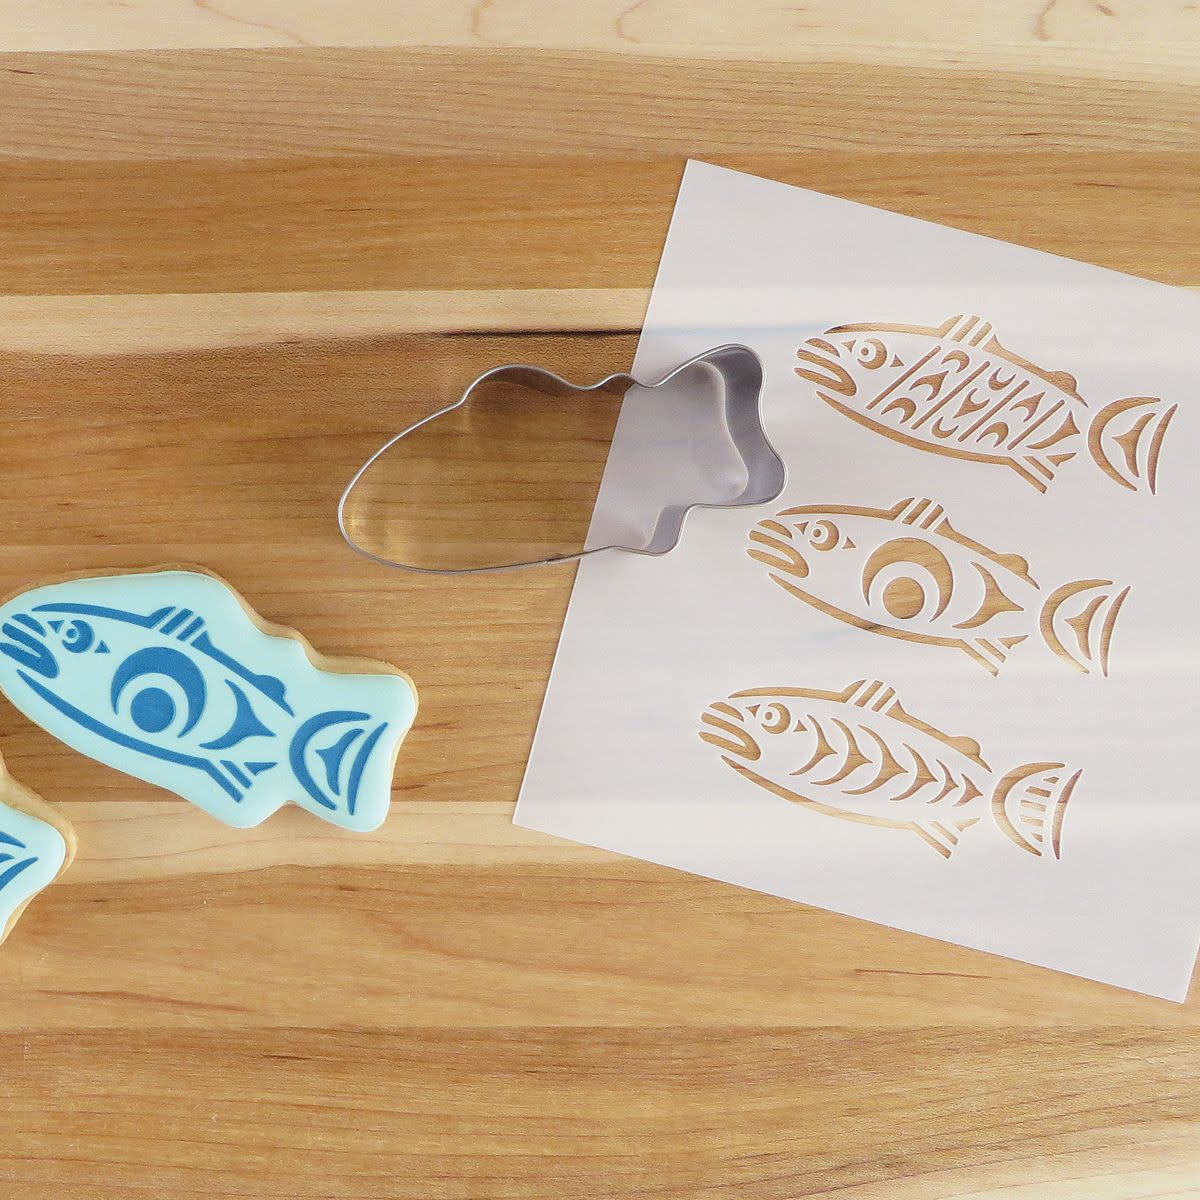 Cookie Cutter & Stencil Set Salmon in the Wild by Simone Diamond-2